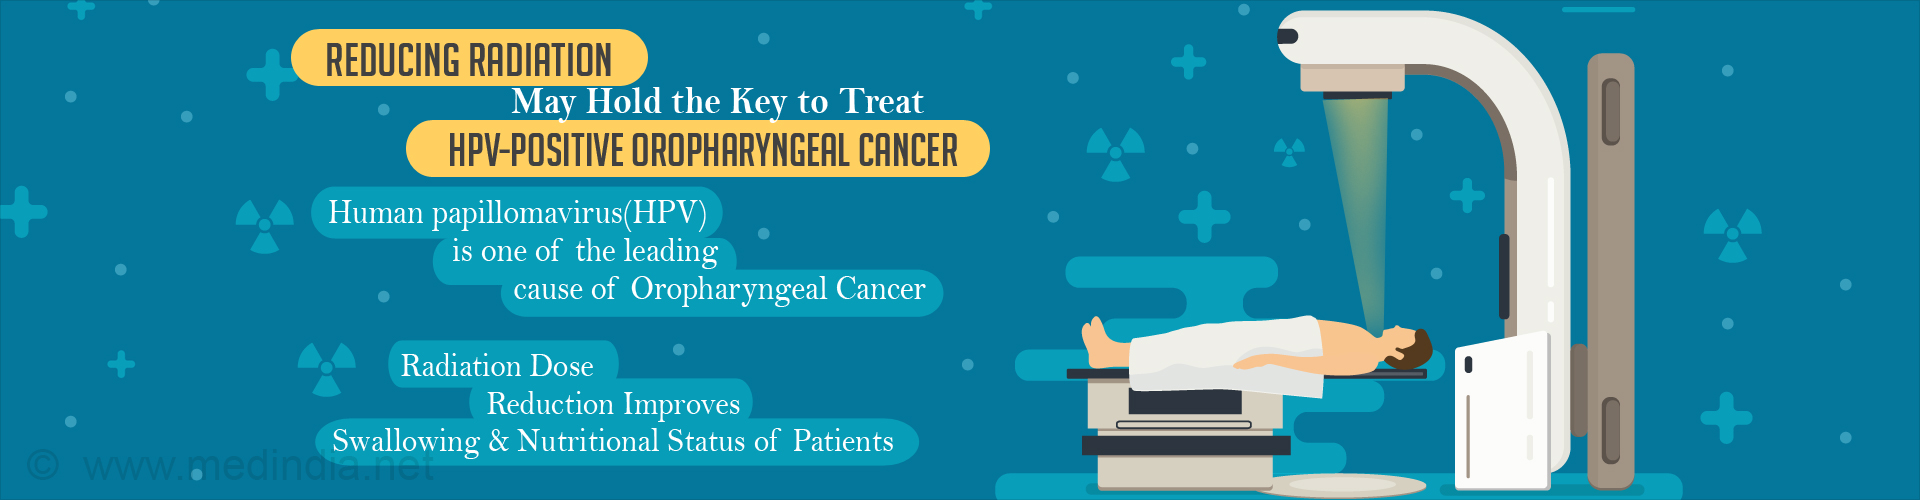 Radiation Dose Reduction may Help Treat HPV-Positive Oropharynx Cancer